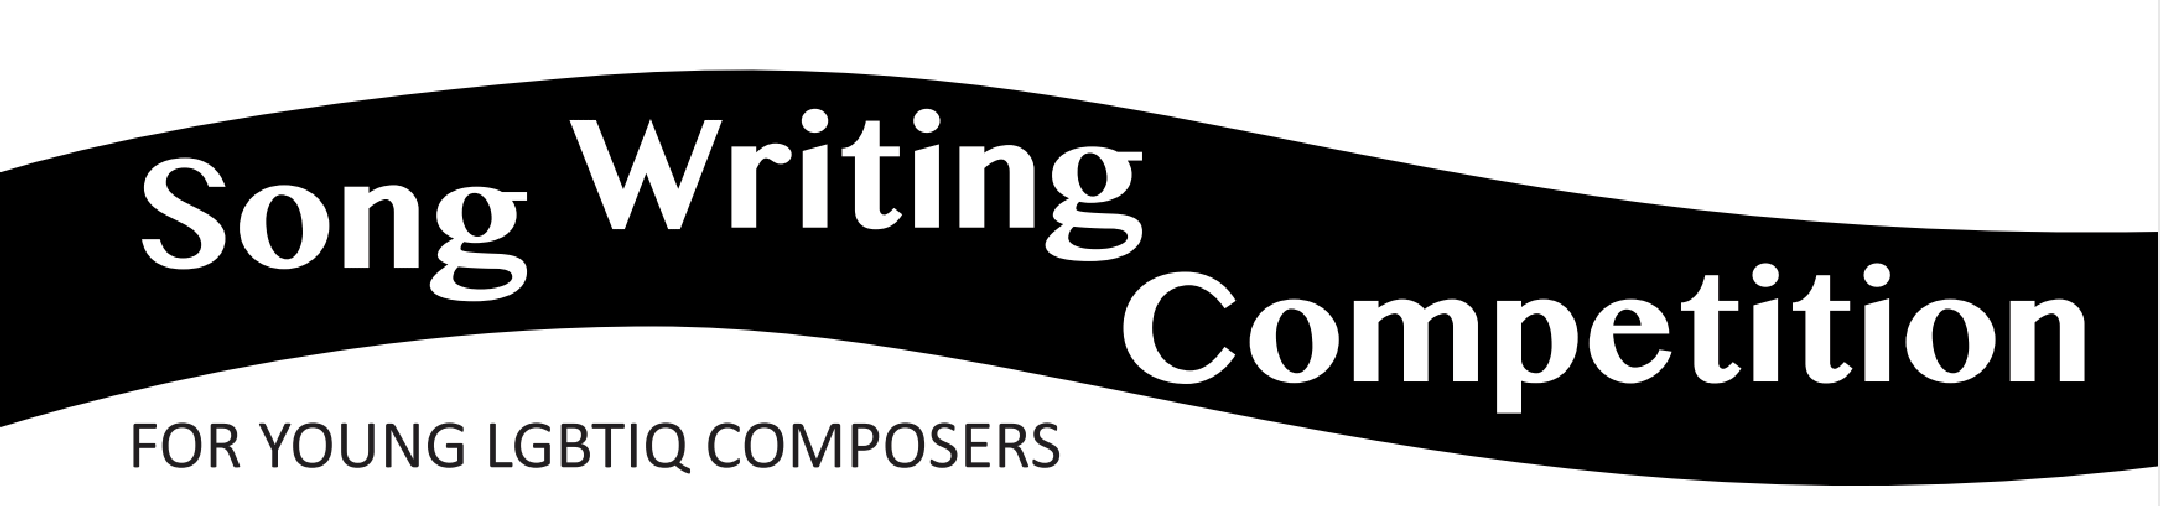 Song writing competition for young LGBTIQ composers - click here for details